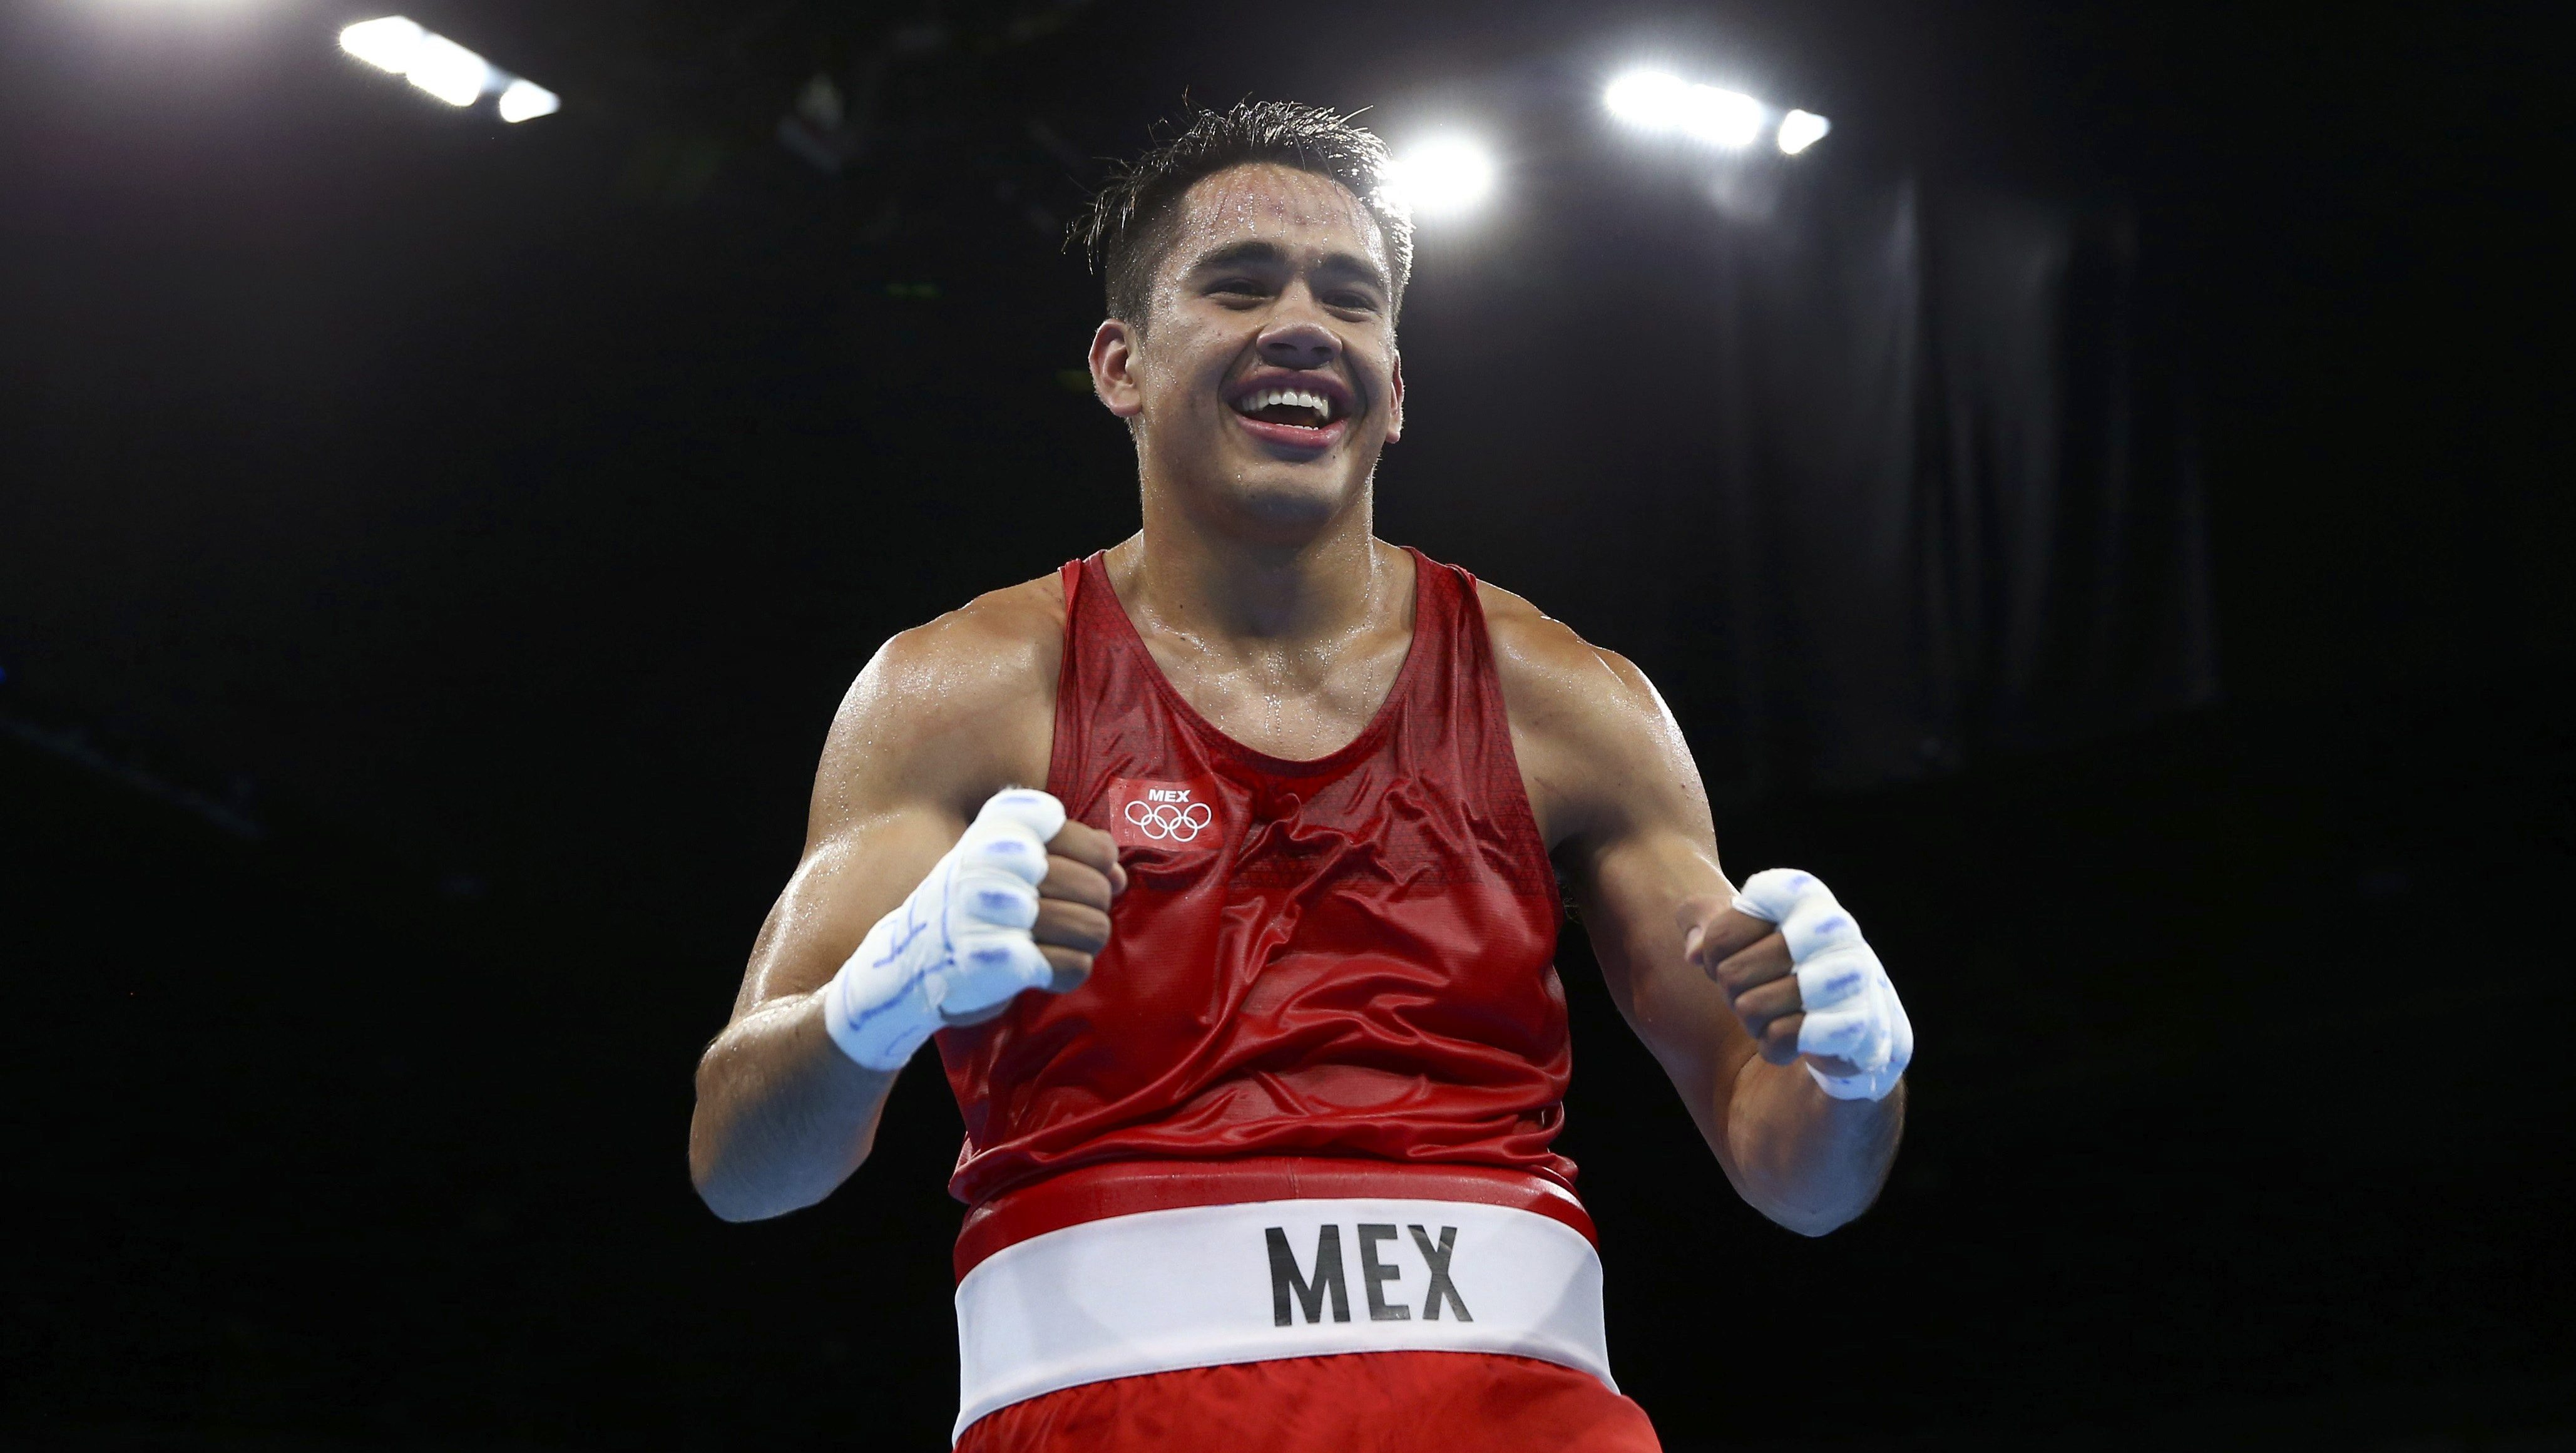 Misael Rodriguez of Mexico celebrates after winning his bout.